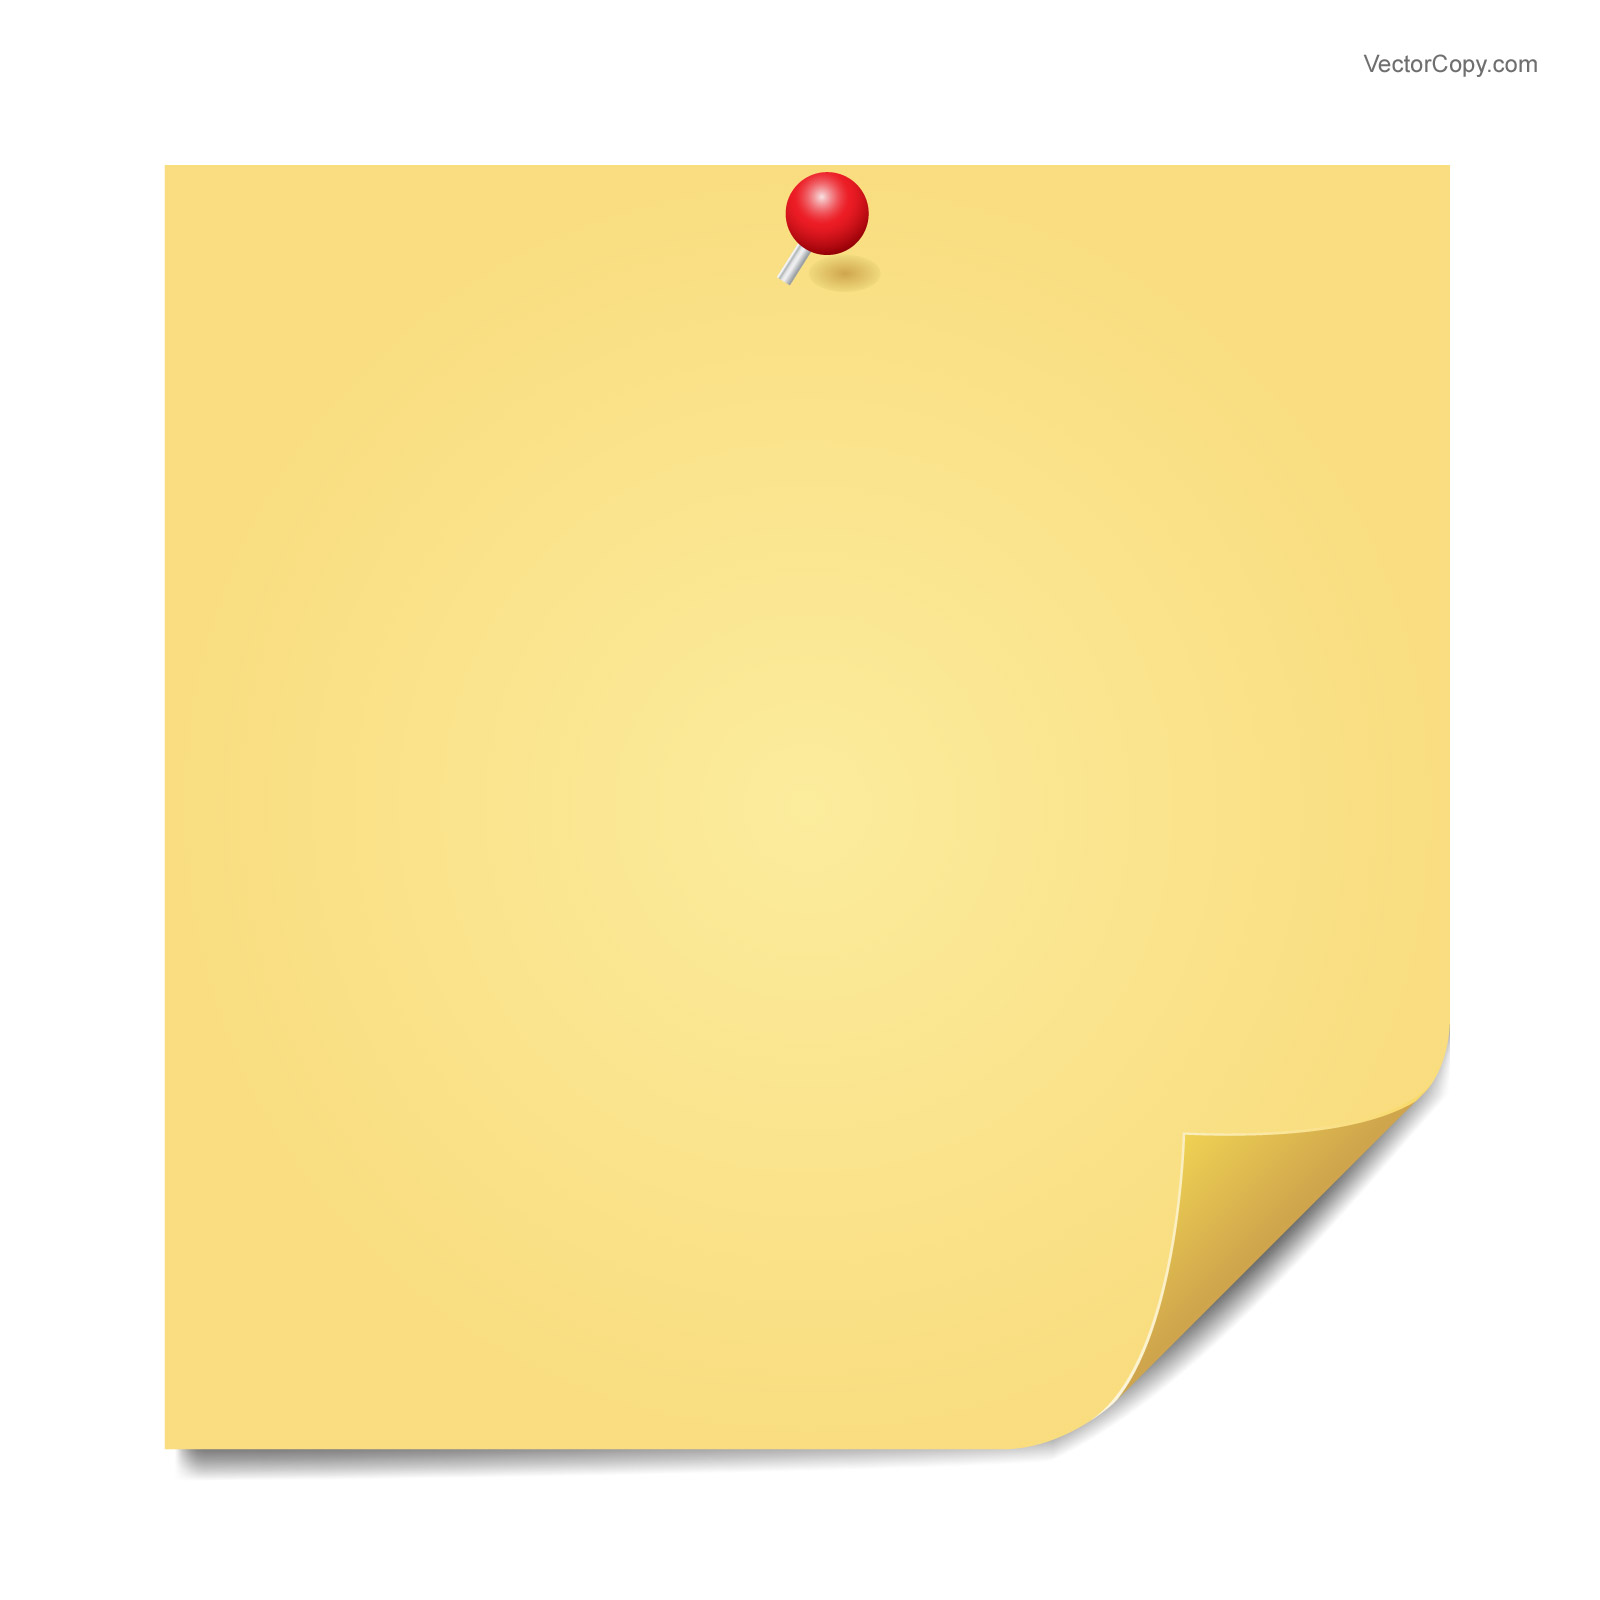 Sticky note fast downloads clipart